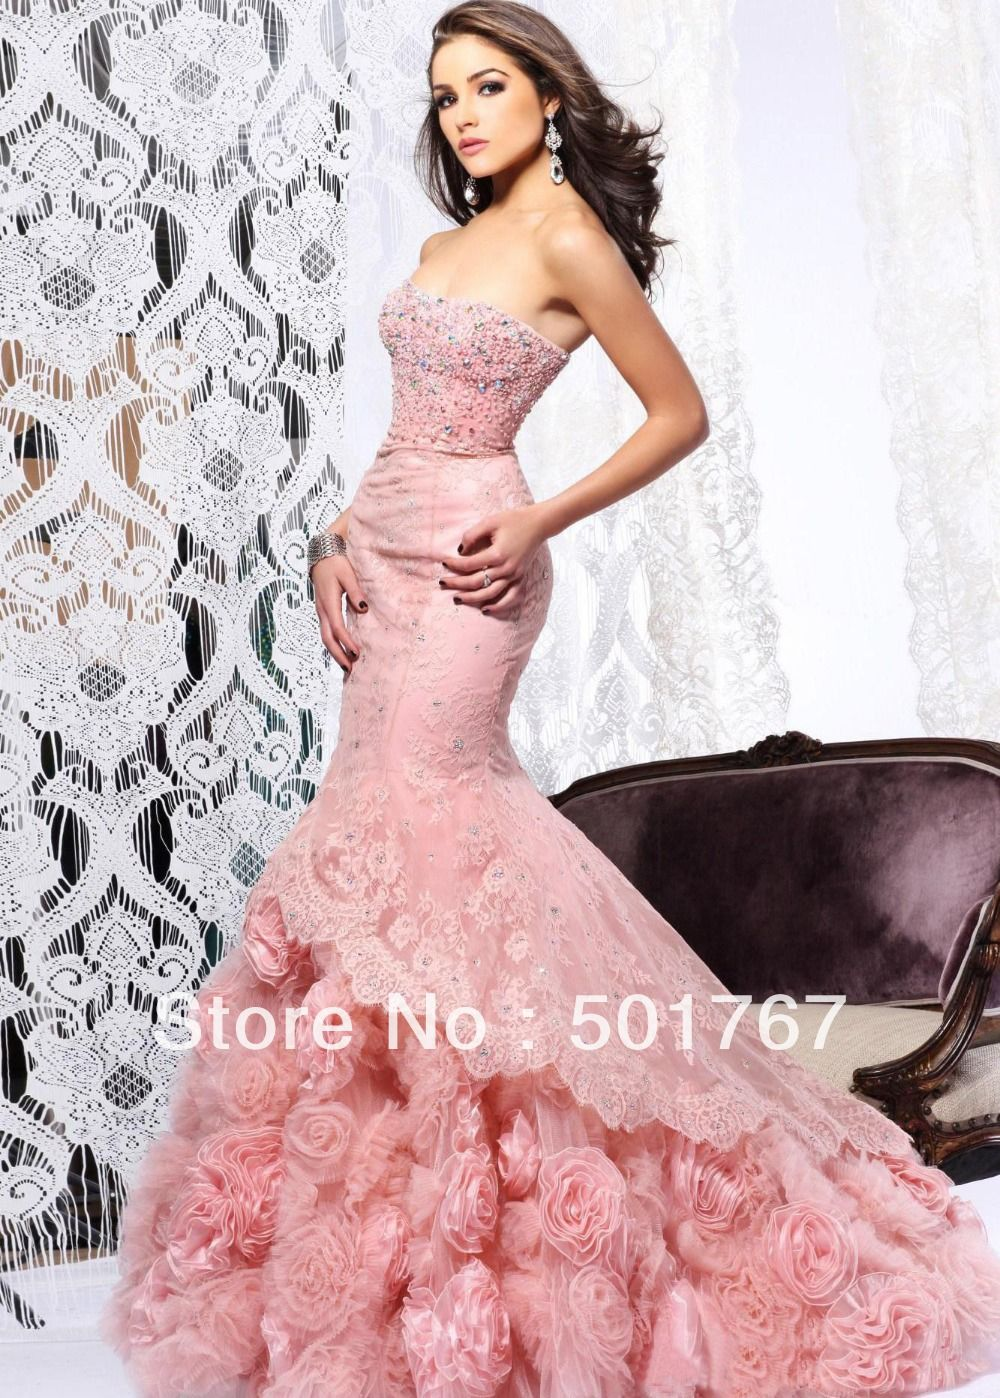 2014 Latest Designs Luxury Pink Mermaid Strapless Crystals Rose Flowers Organza Lace Wedding Dresses China MN1044